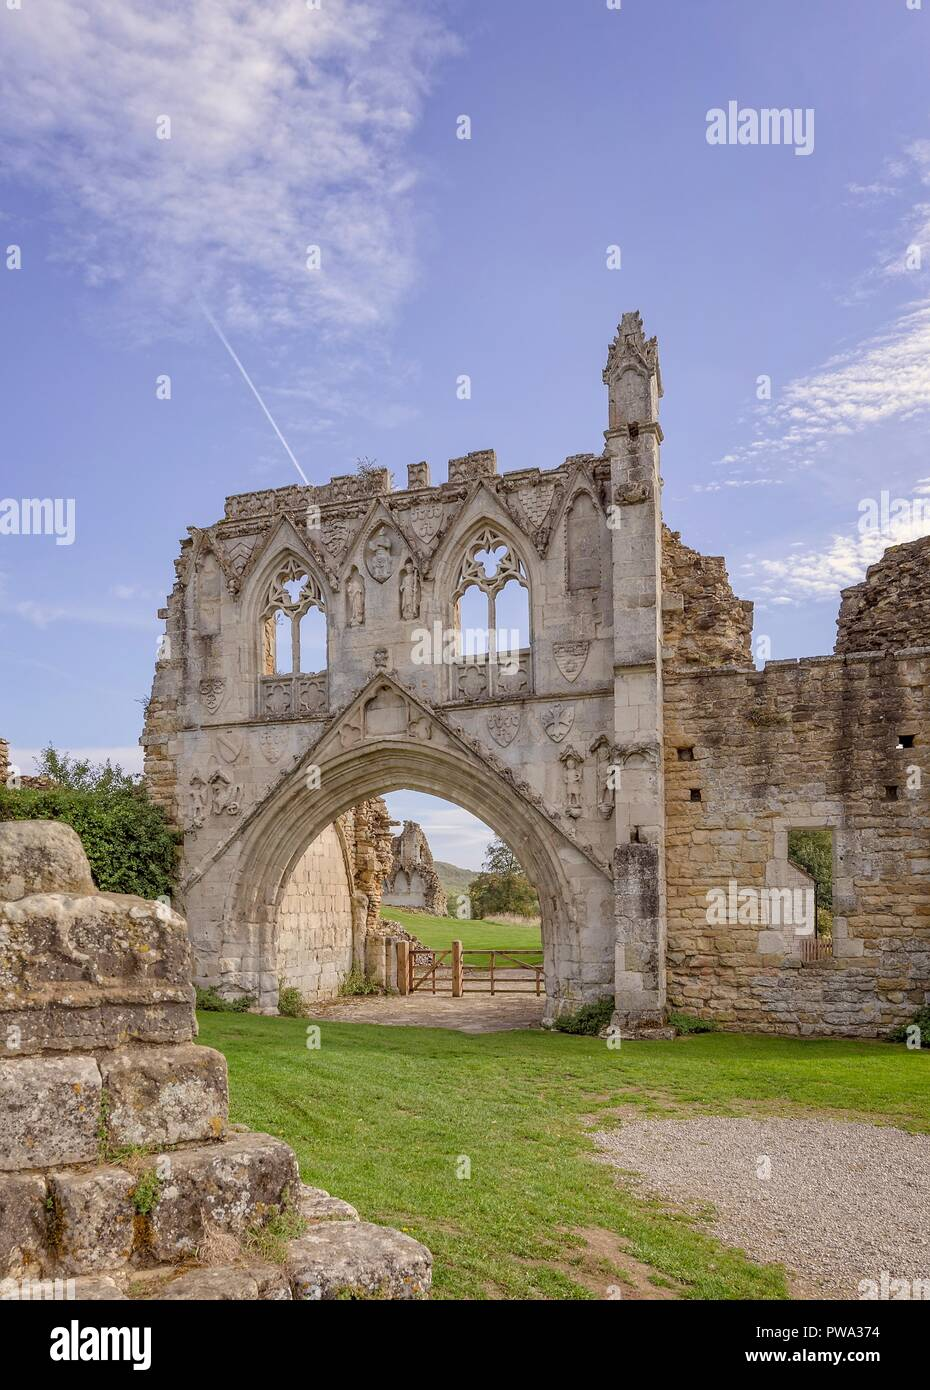 The ruins of Kirkham Priory in North Yorkshire.  The gateway with its carvings largely intact standing under a blue sky. Stock Photo